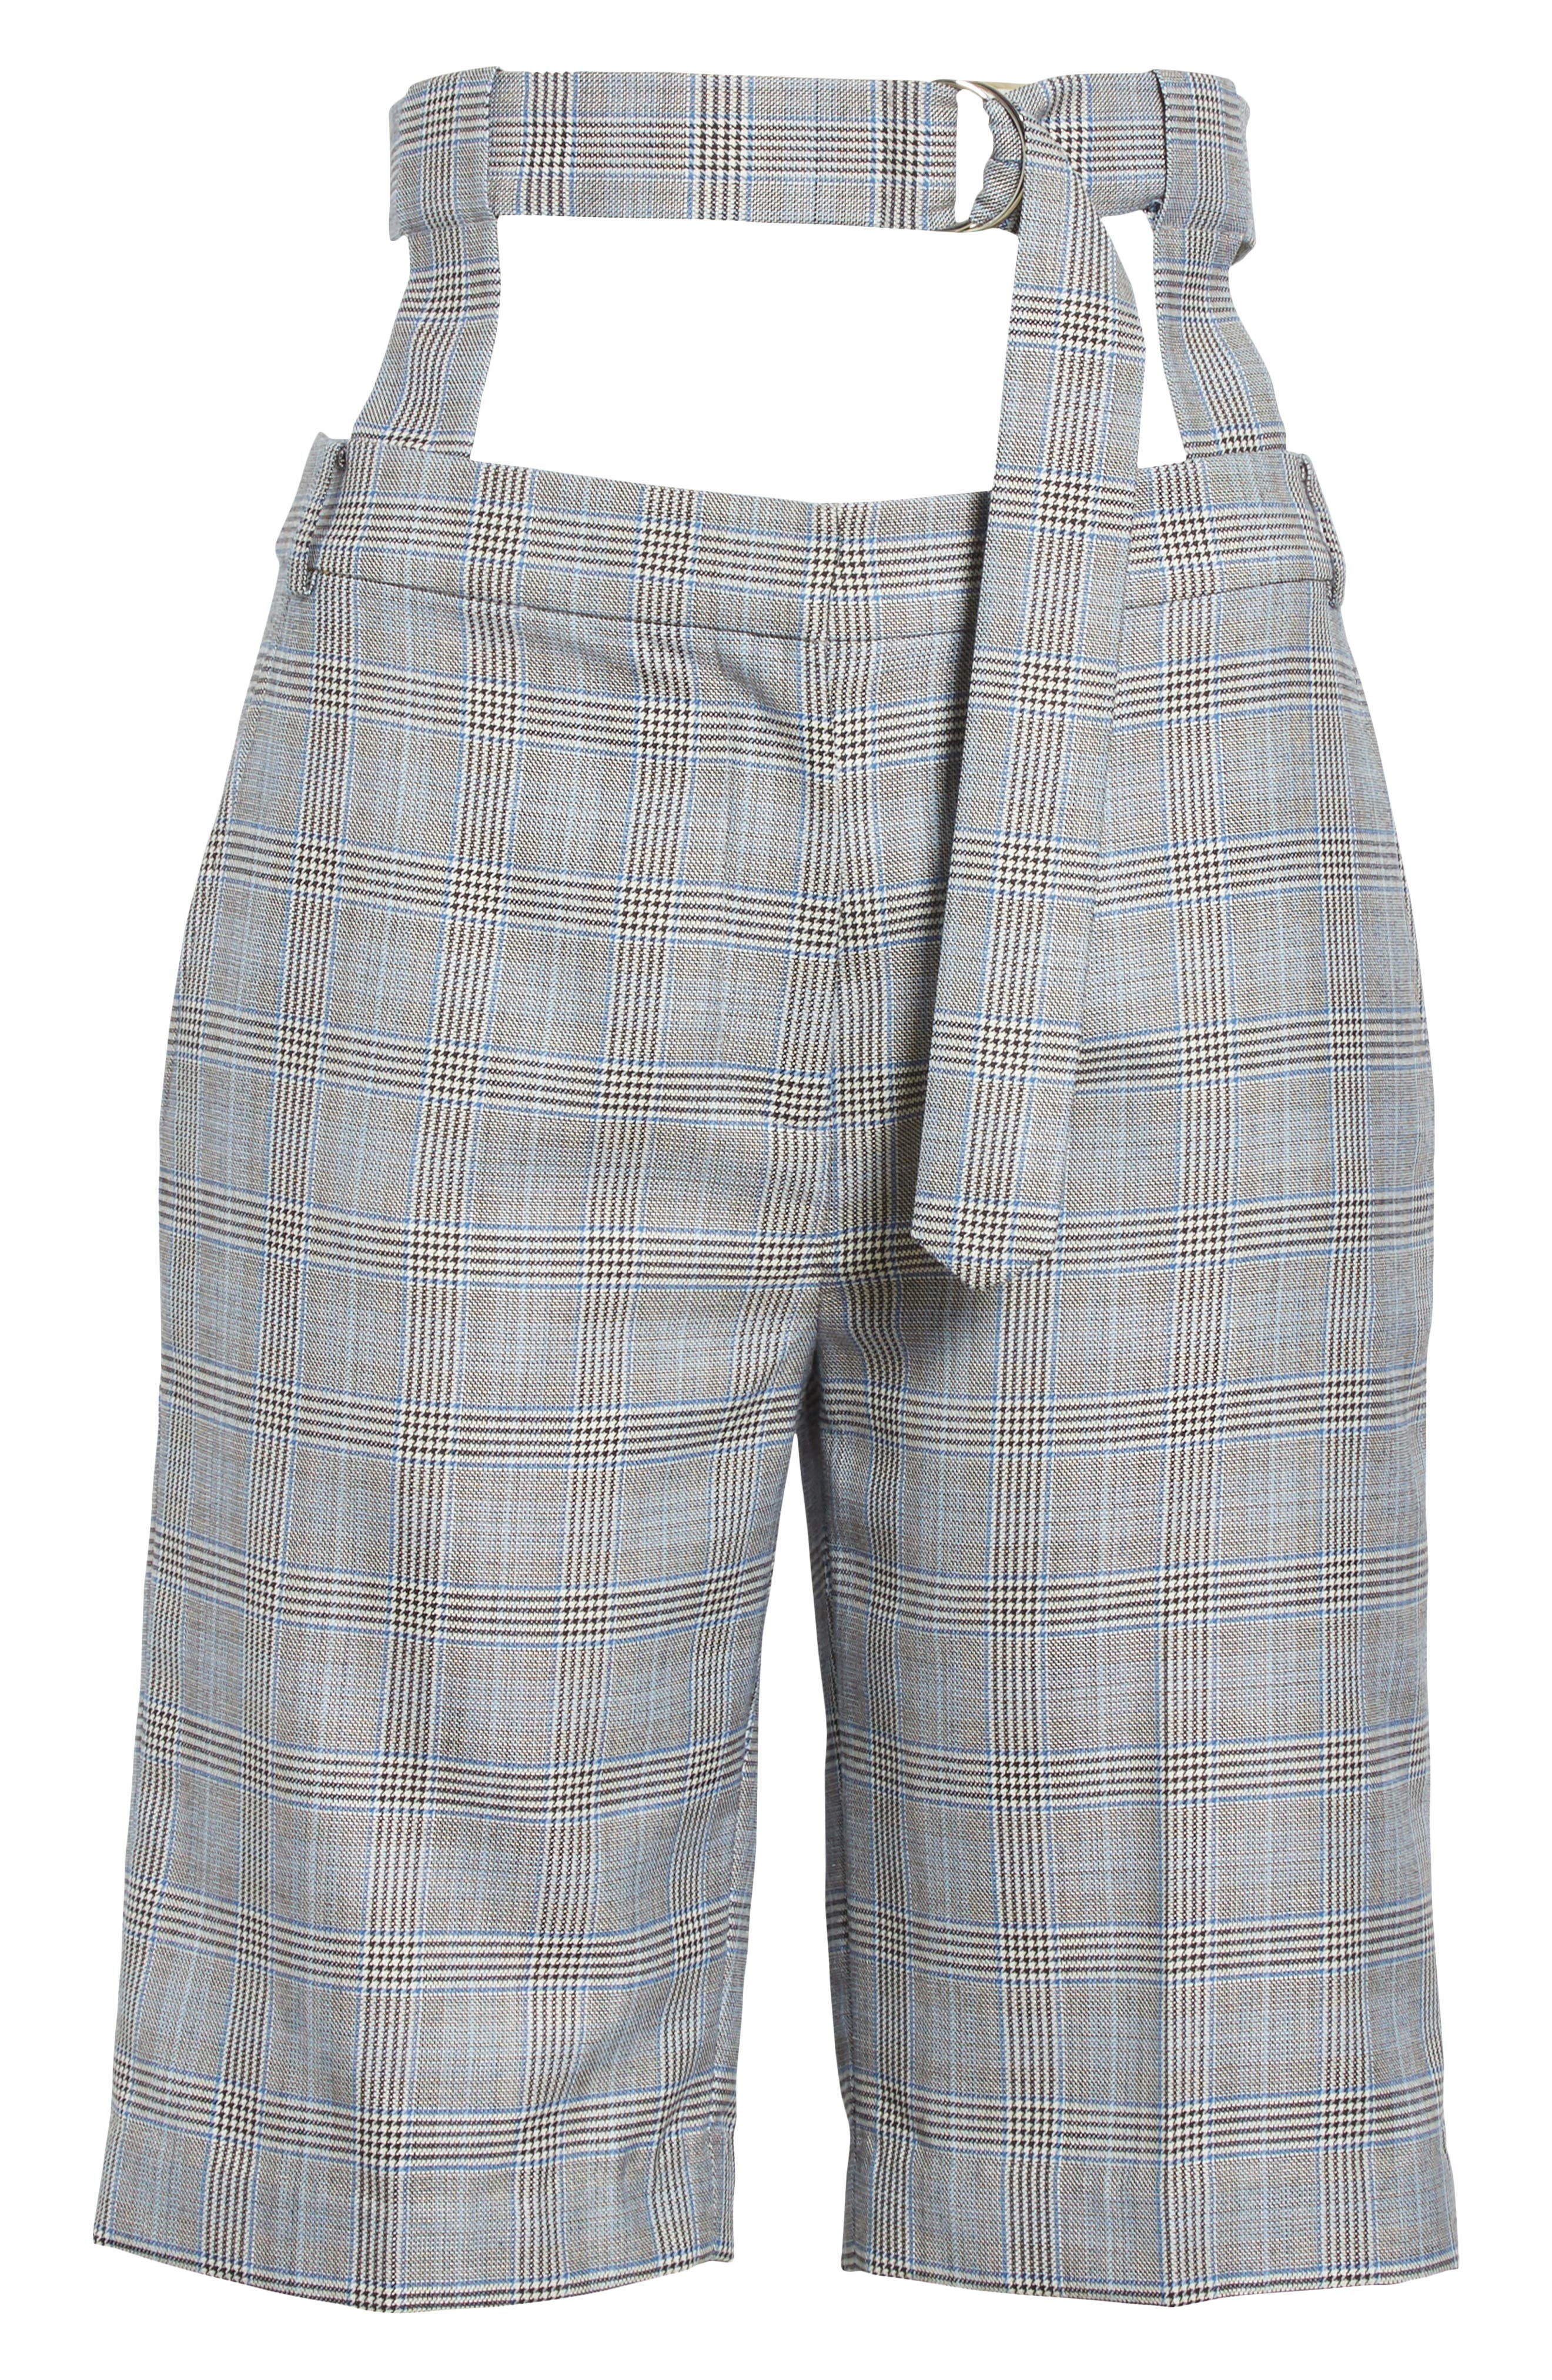 Removable Corset Plaid Shorts,                             Alternate thumbnail 7, color,                             Grey Multi